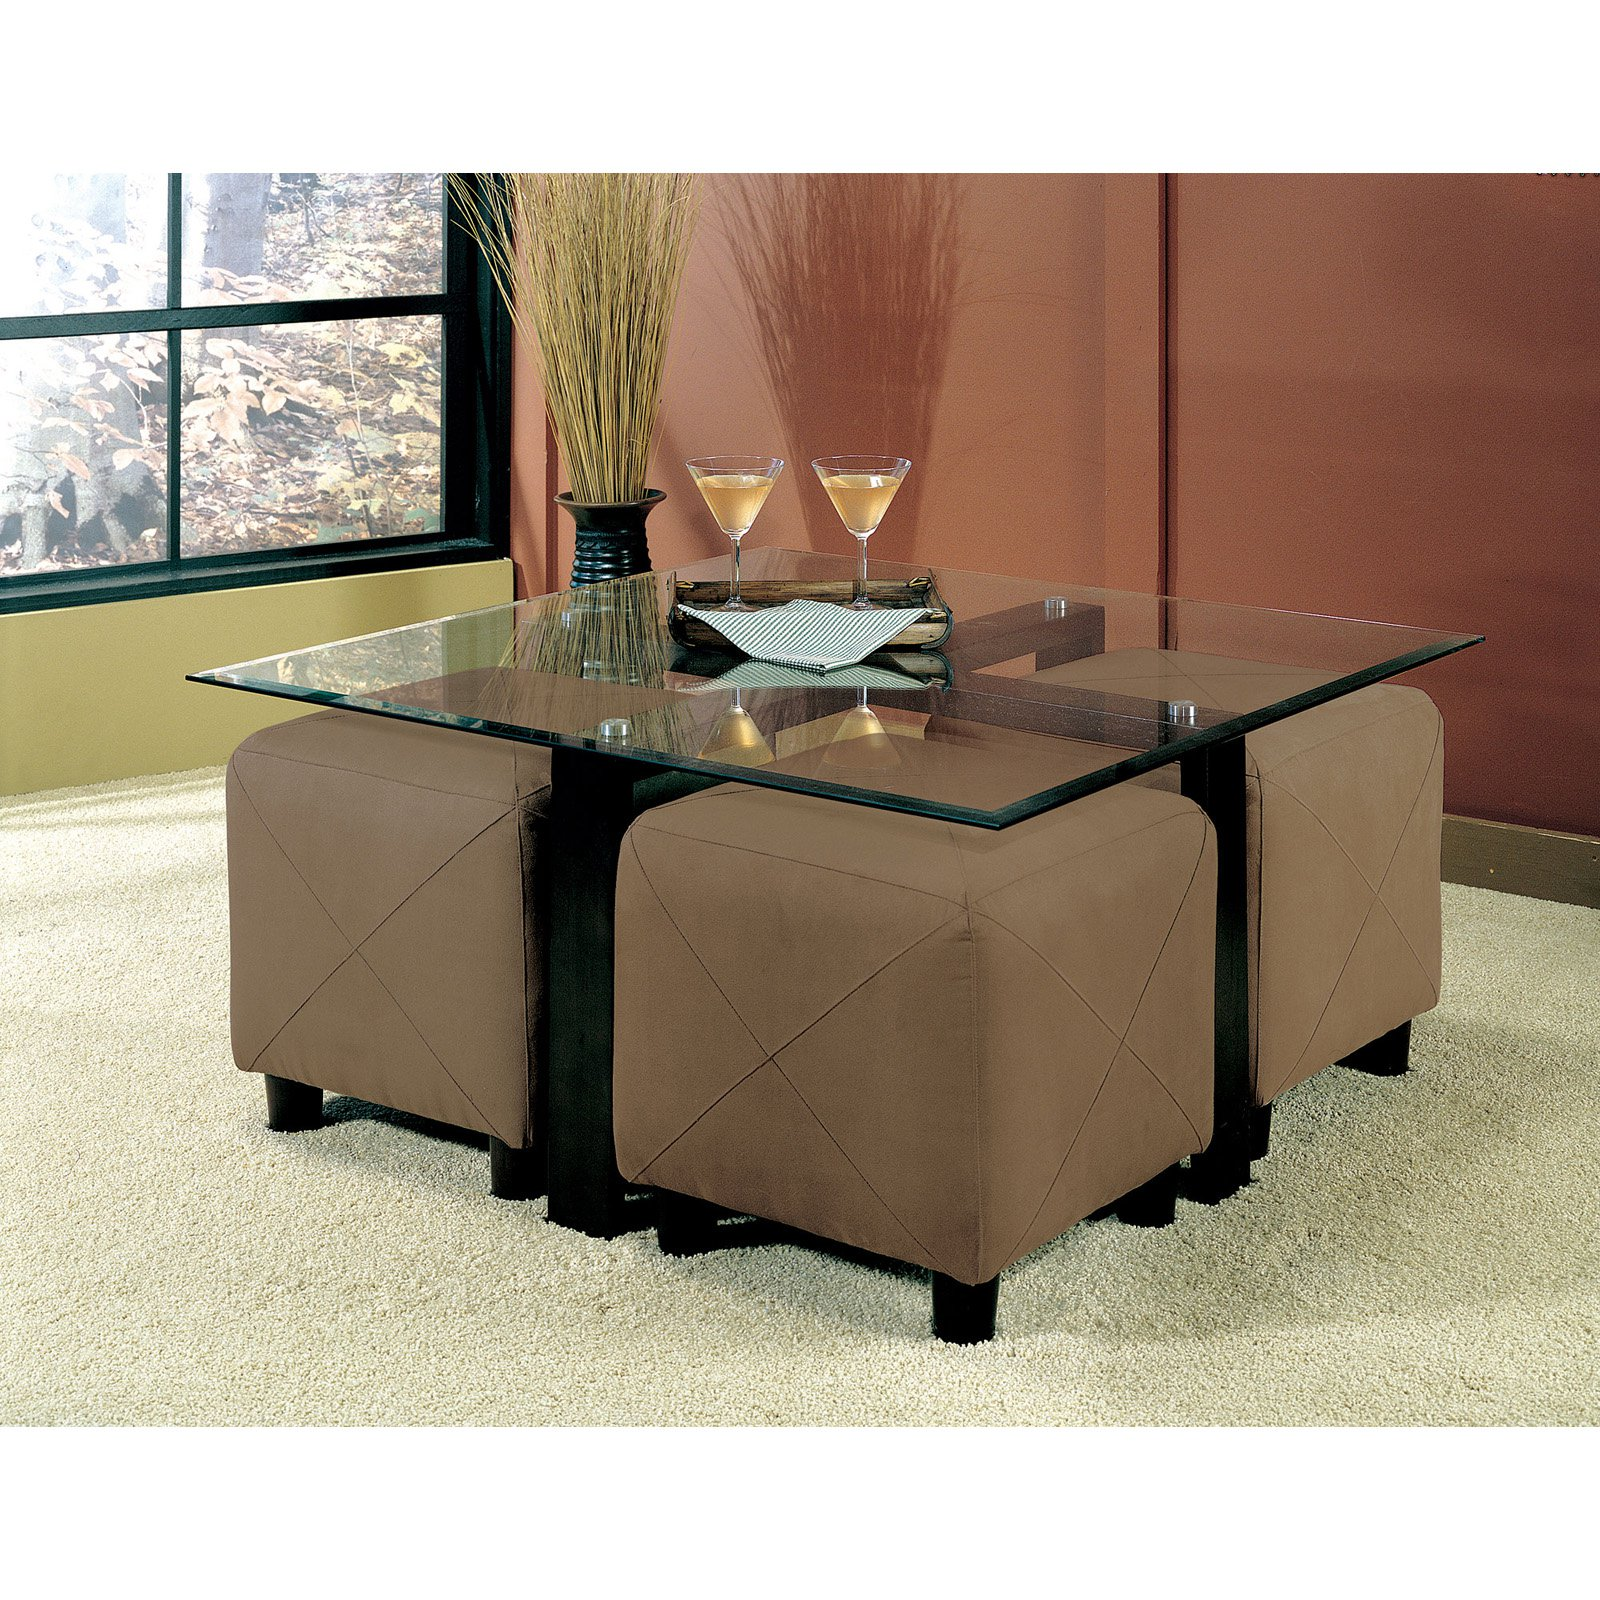 Coaster Furniture Glass Top Square Coffee Table